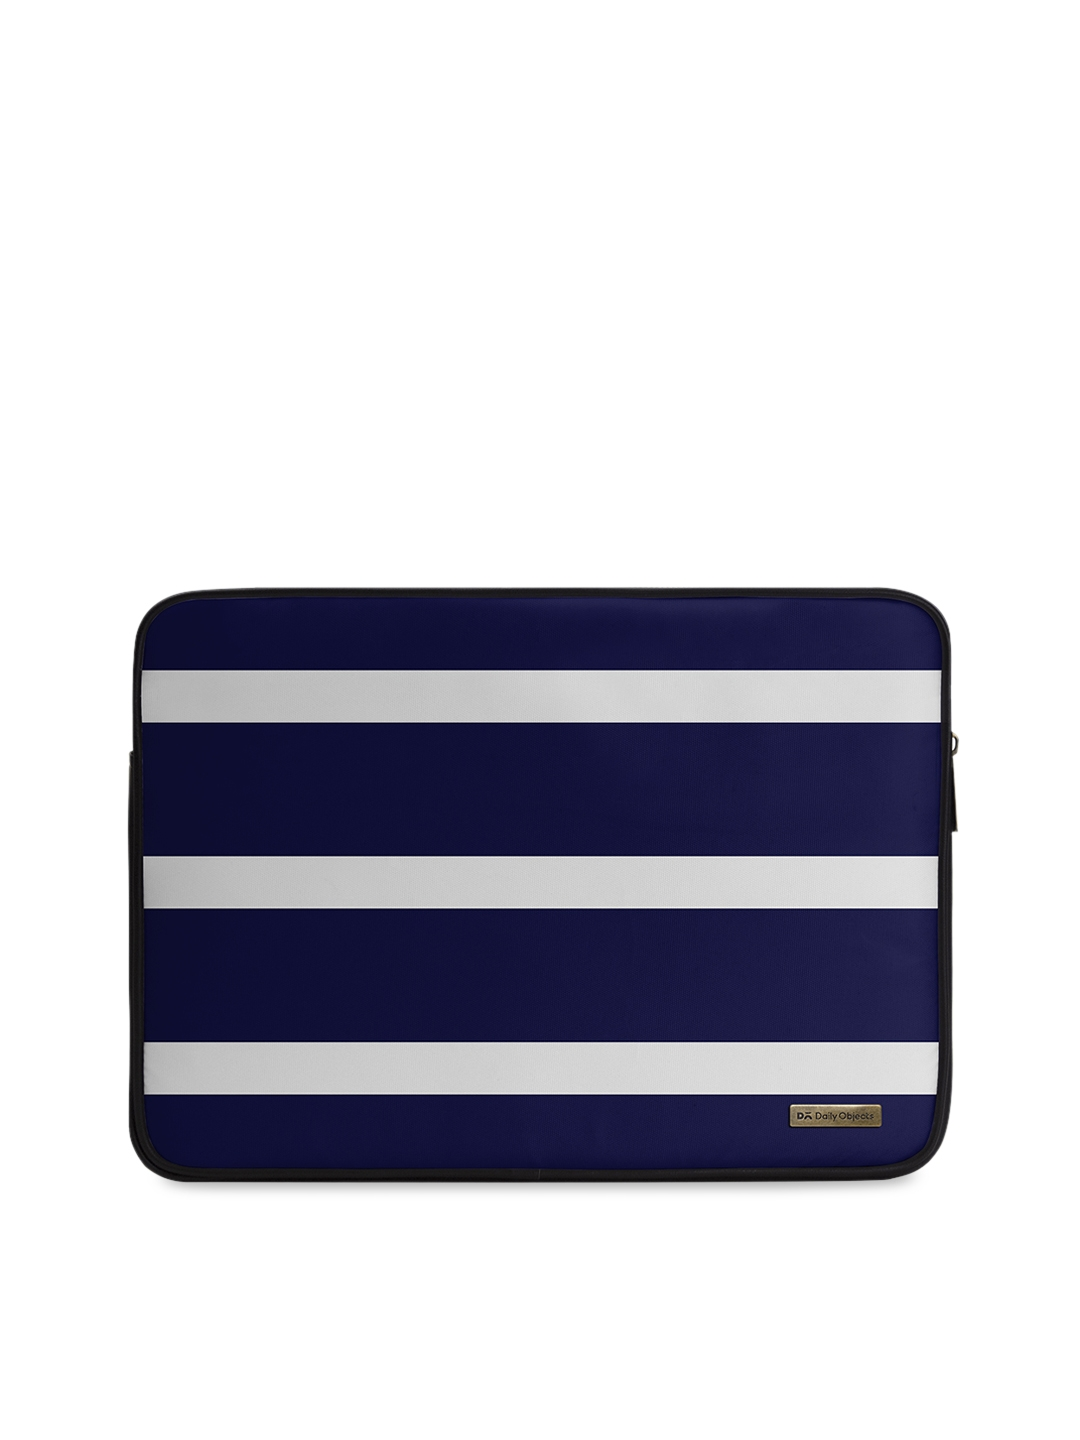 DailyObjects Unisex Navy Blue   White Striped 13 inch Laptop Sleeve